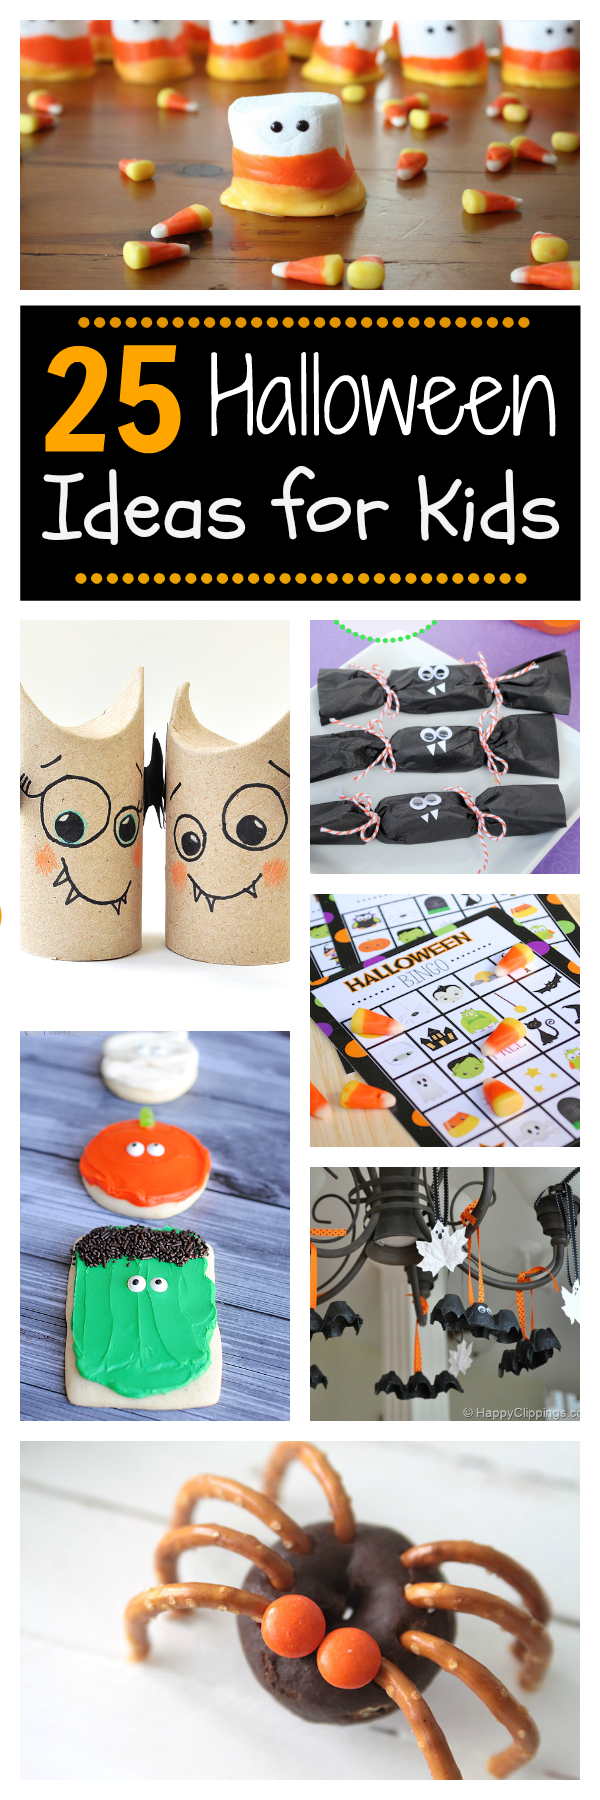 halloween crafts ideas for kids 25 school ideas for 6670